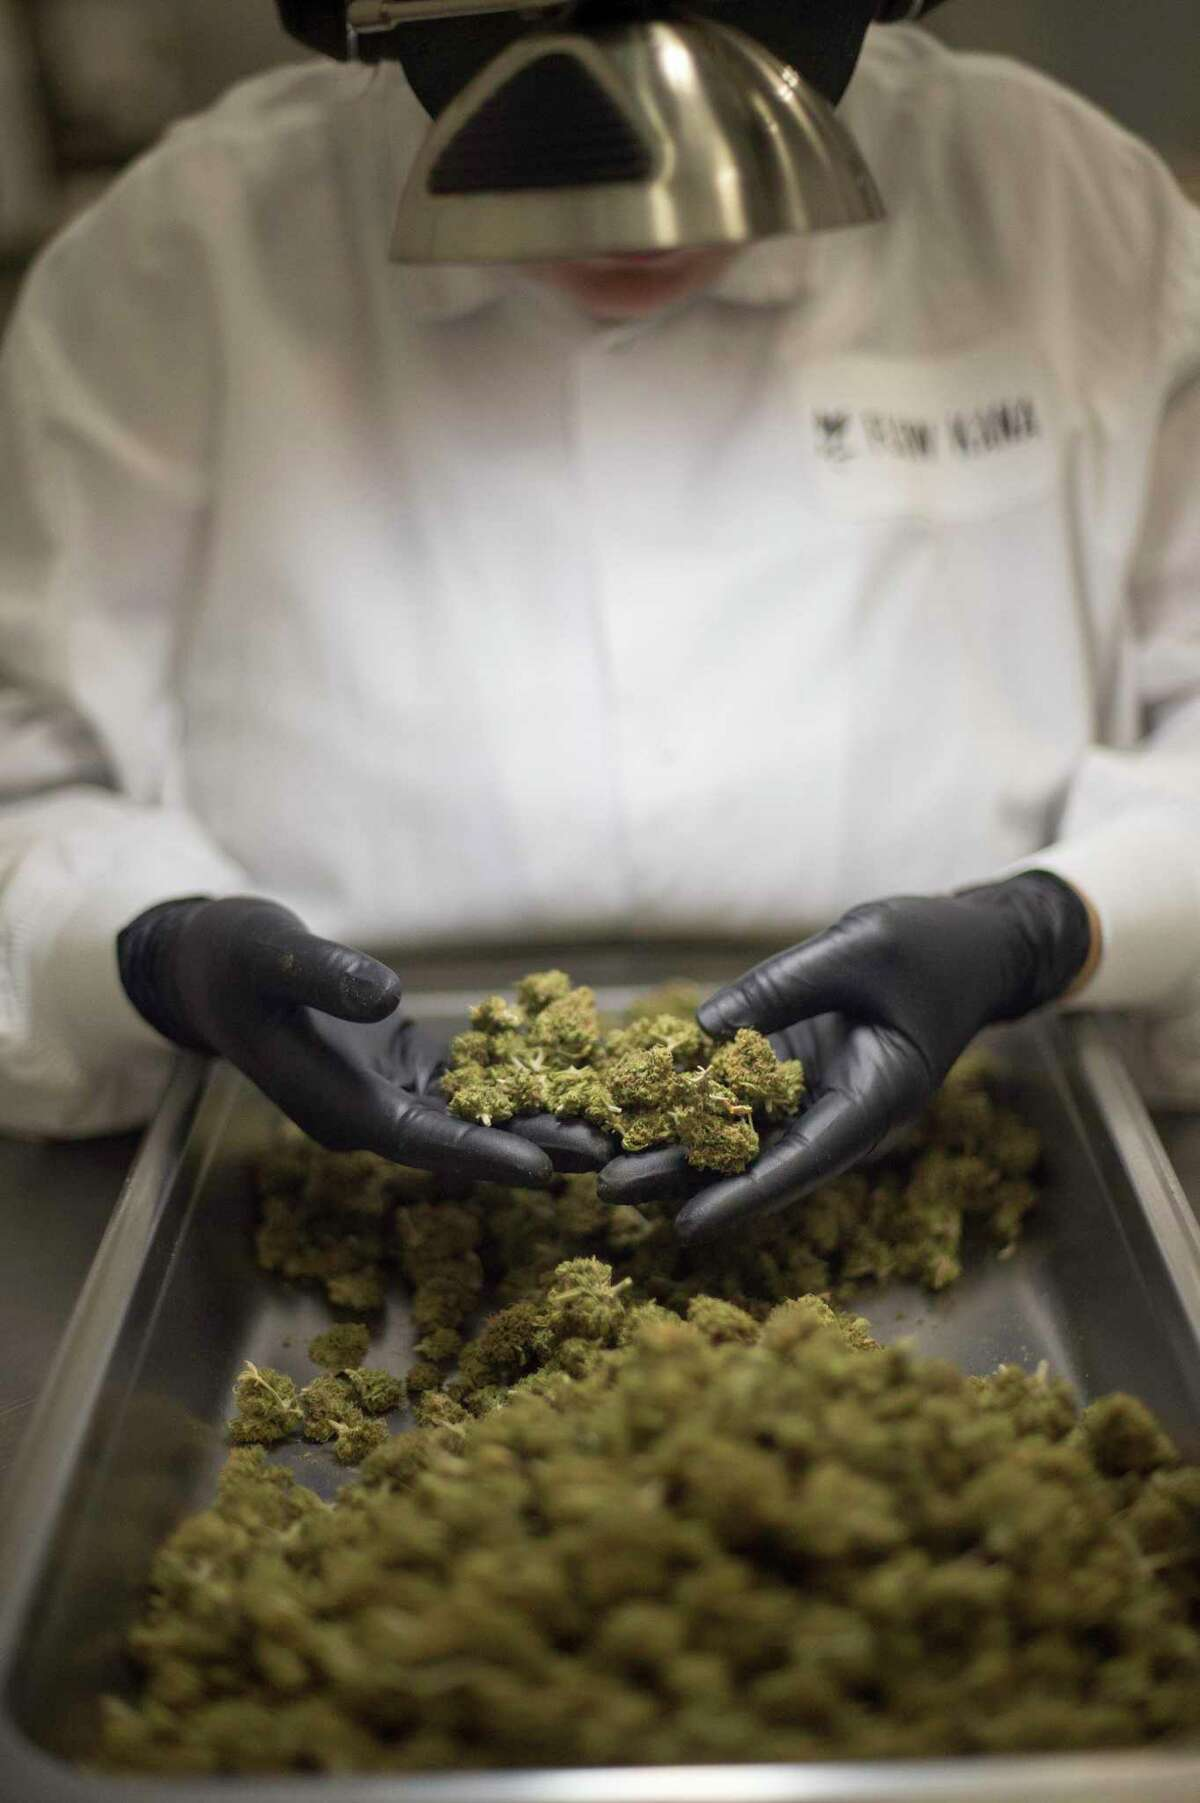 Cannabis is packaged and processed at Flow Kana, a CA-based cannabis brand that sources from small batch craft farmers, at their facility in Redwood Valley, CA on July 13, 2018. Summer Tres inspects cannabis for any molds or imperfections at Flow Kana.